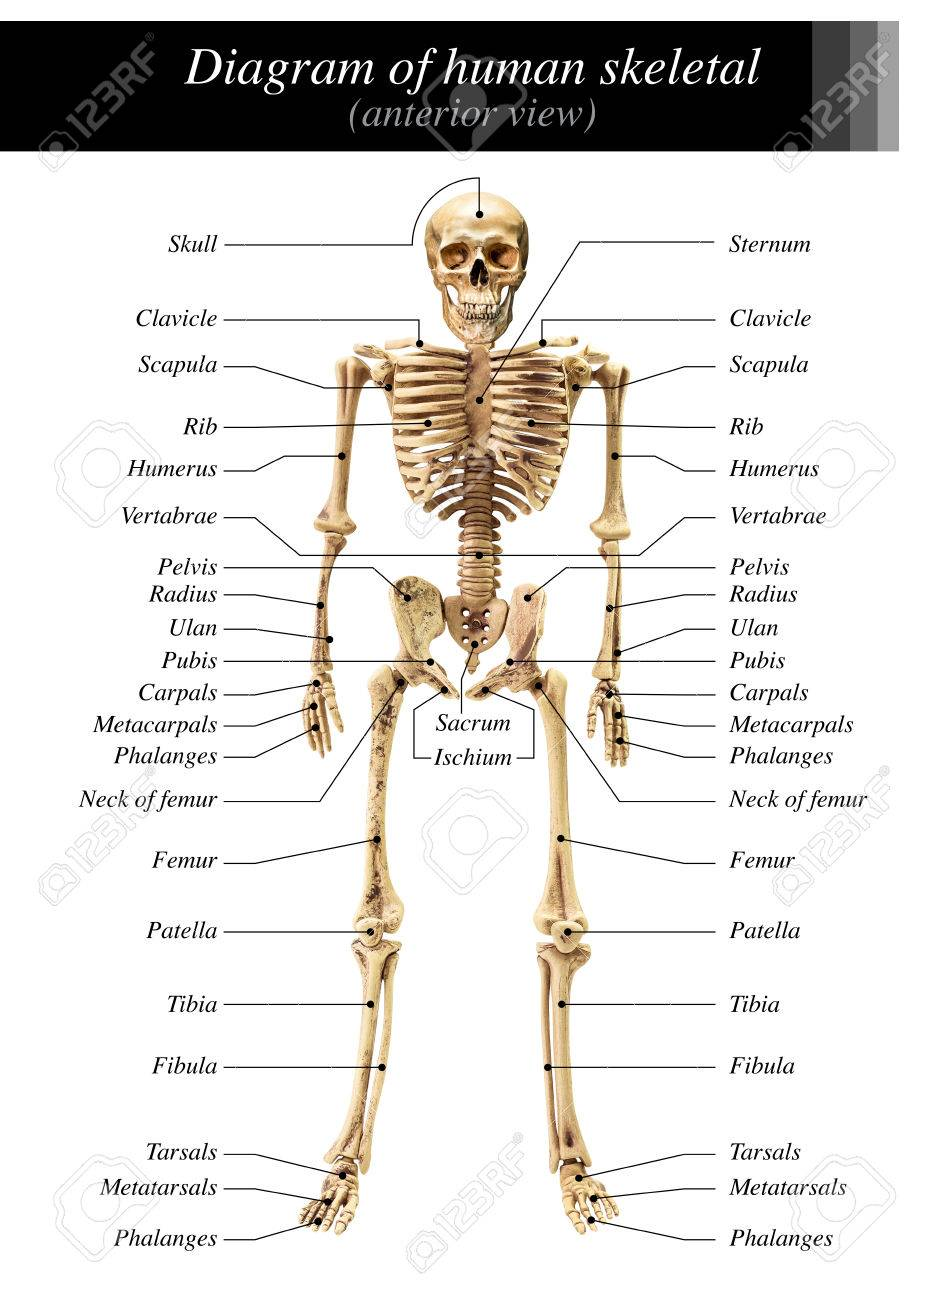 Human Skeleton Diagram In Anterior View On White Background For